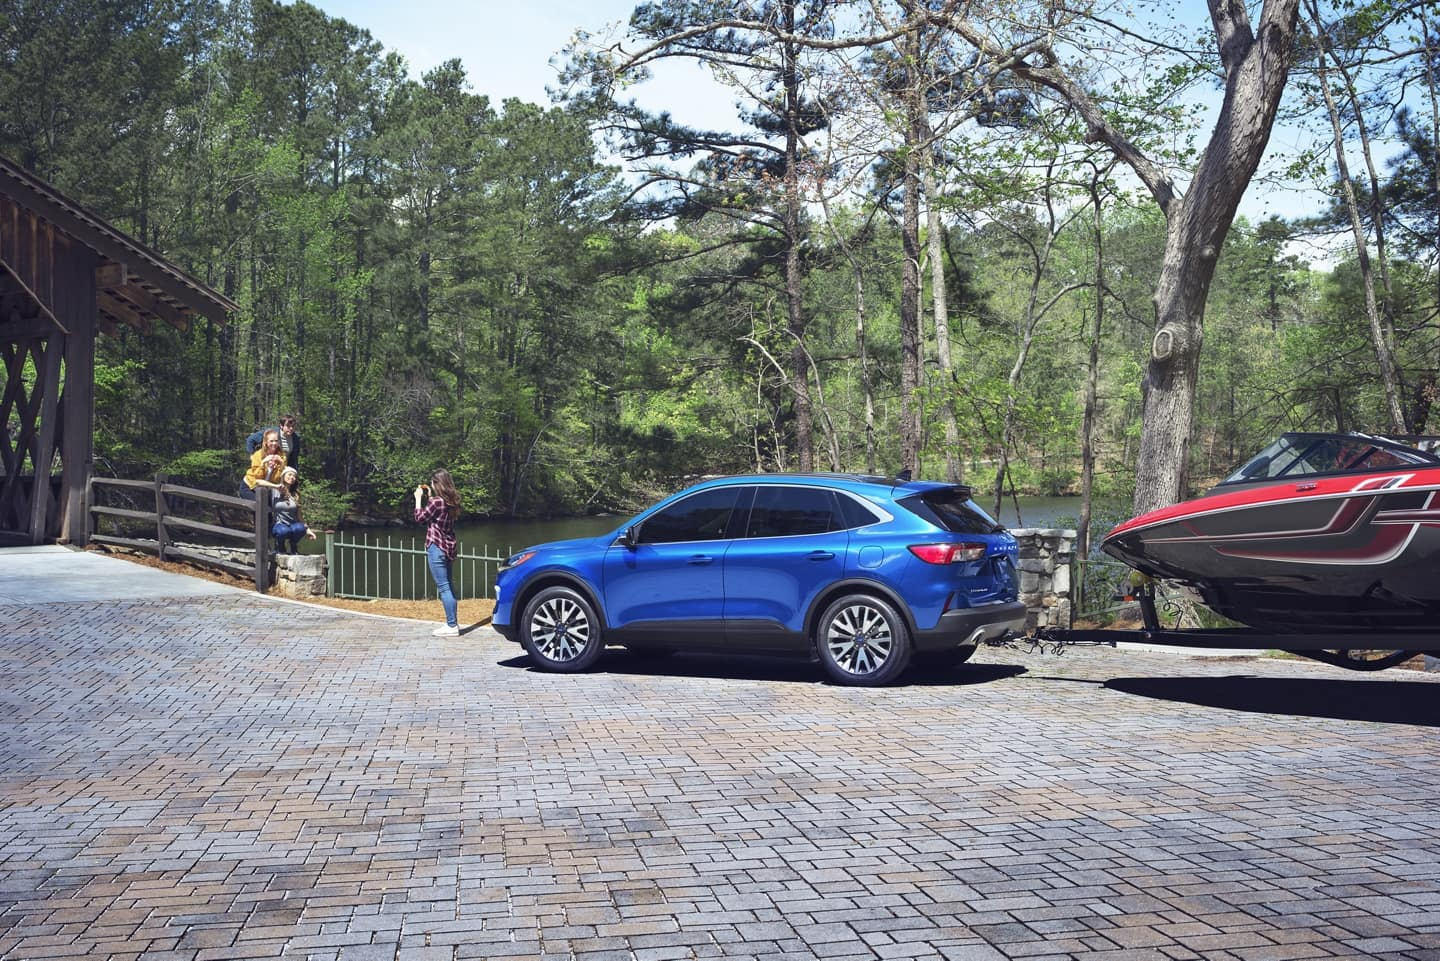 2020 Ford Escape towing boat on brick road